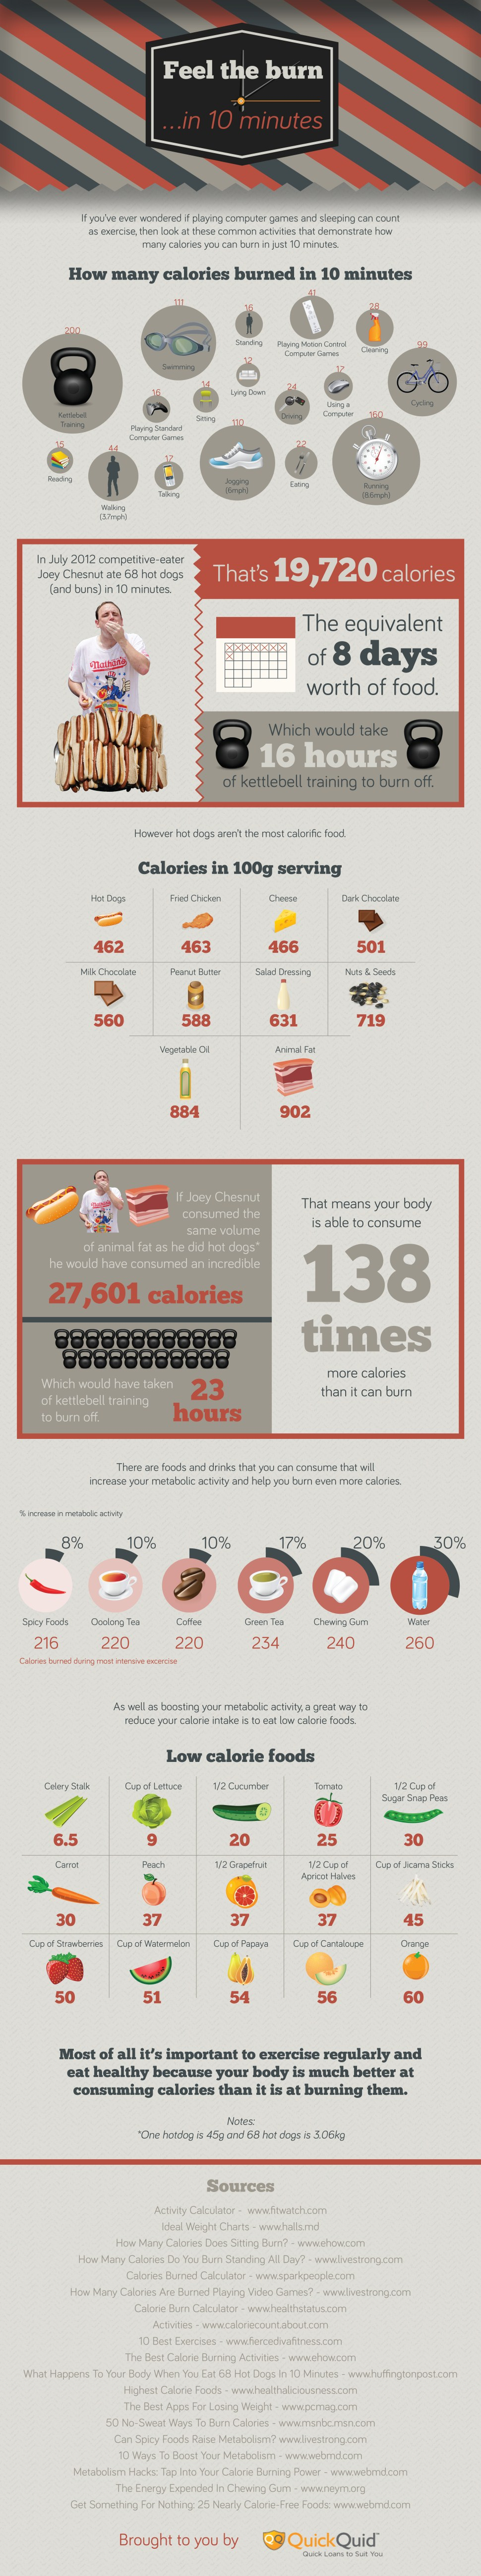 Feel The Burn In 10 Minutes - Infographic